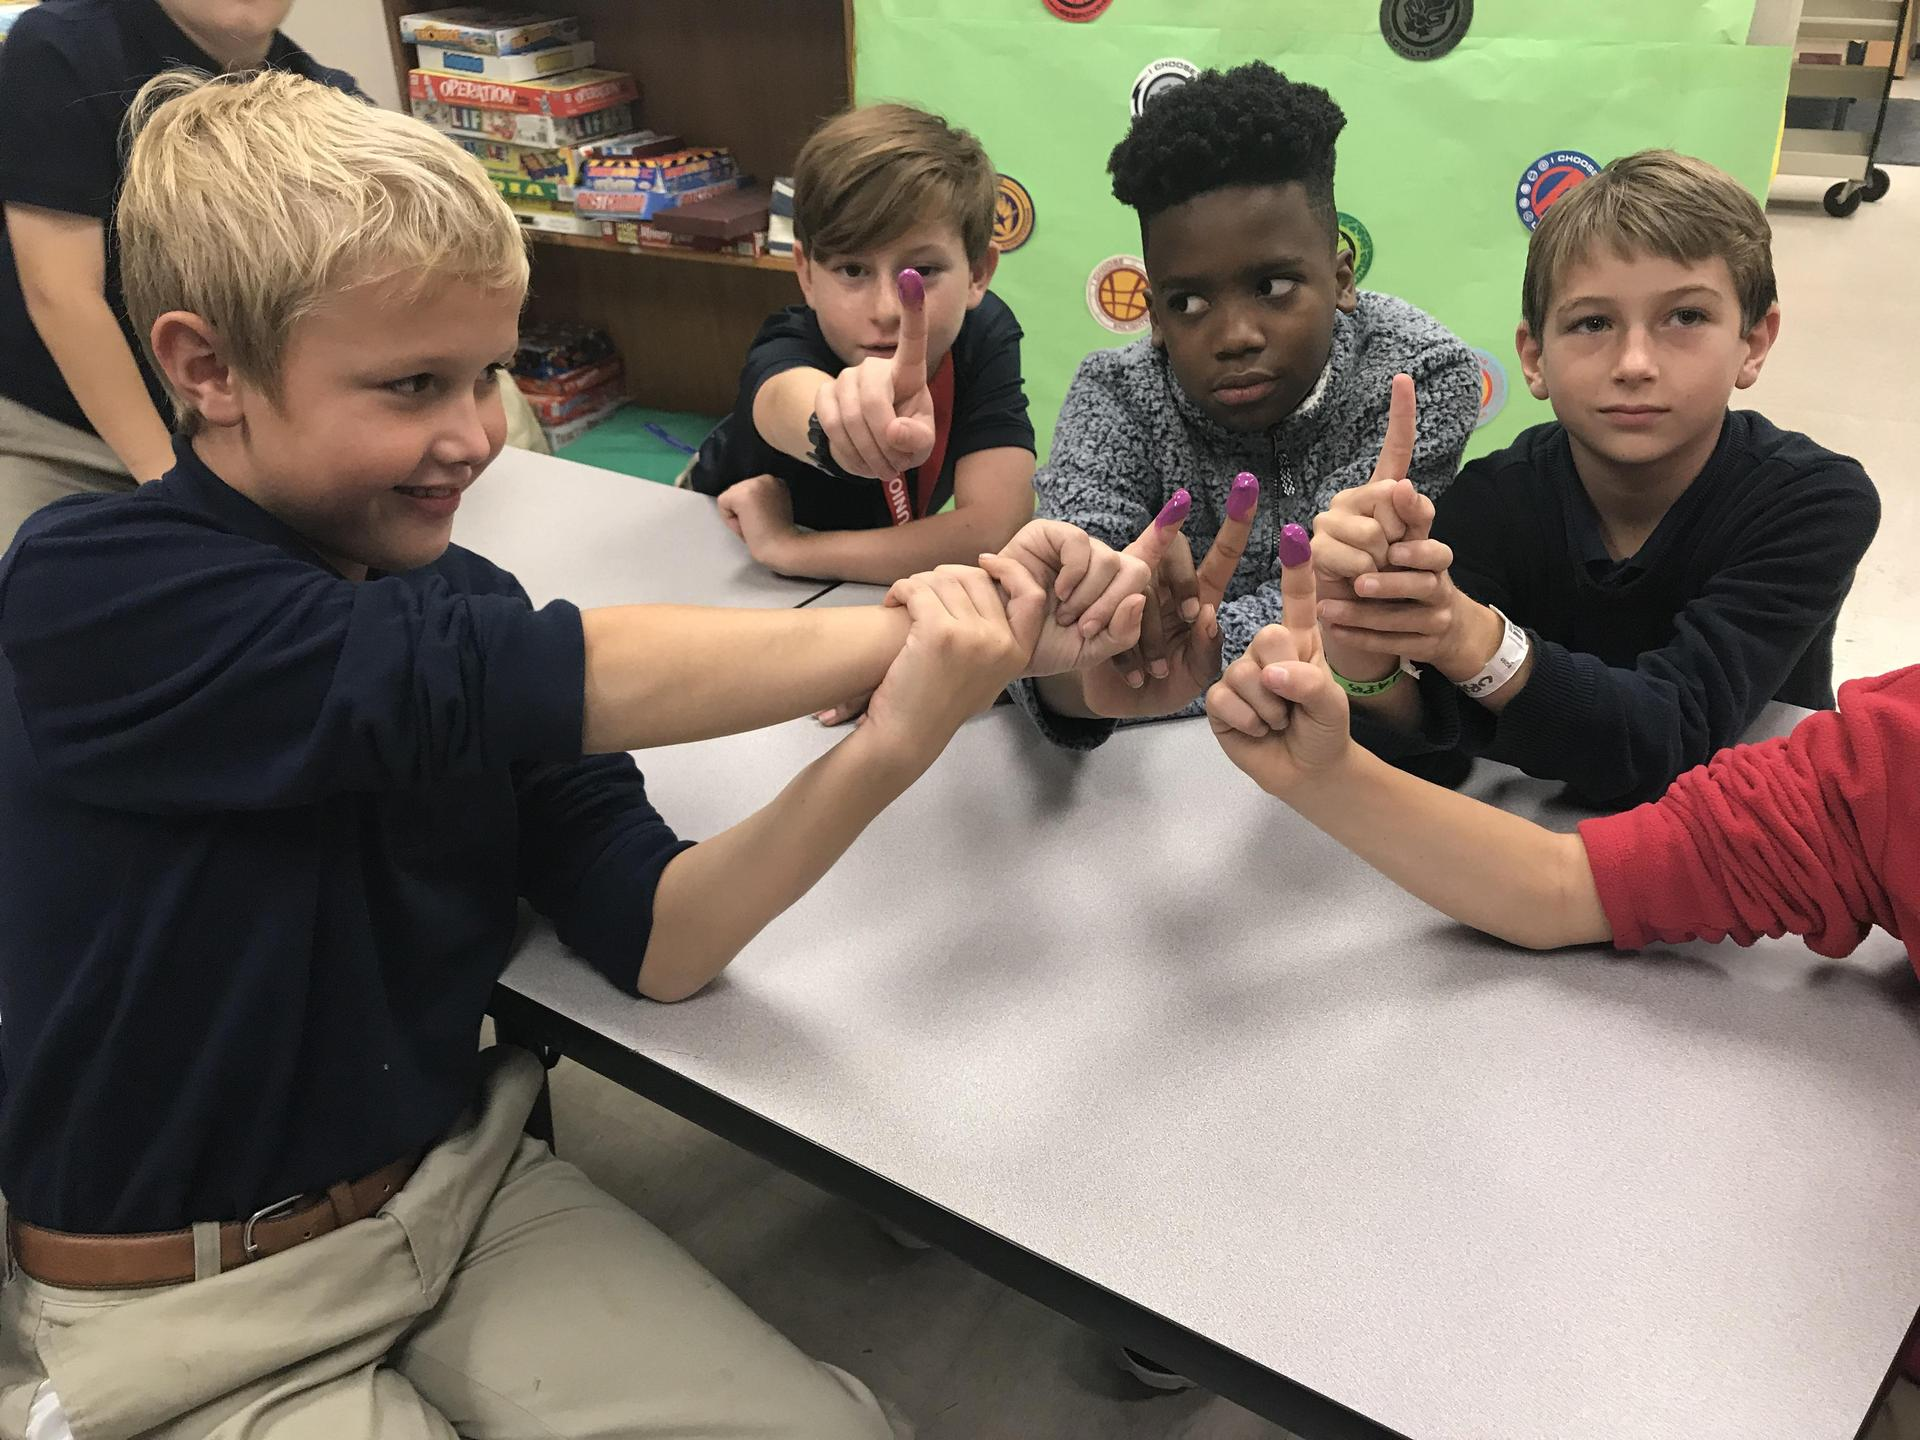 4th graders show off the proof of voting with their purple fingers on election day.